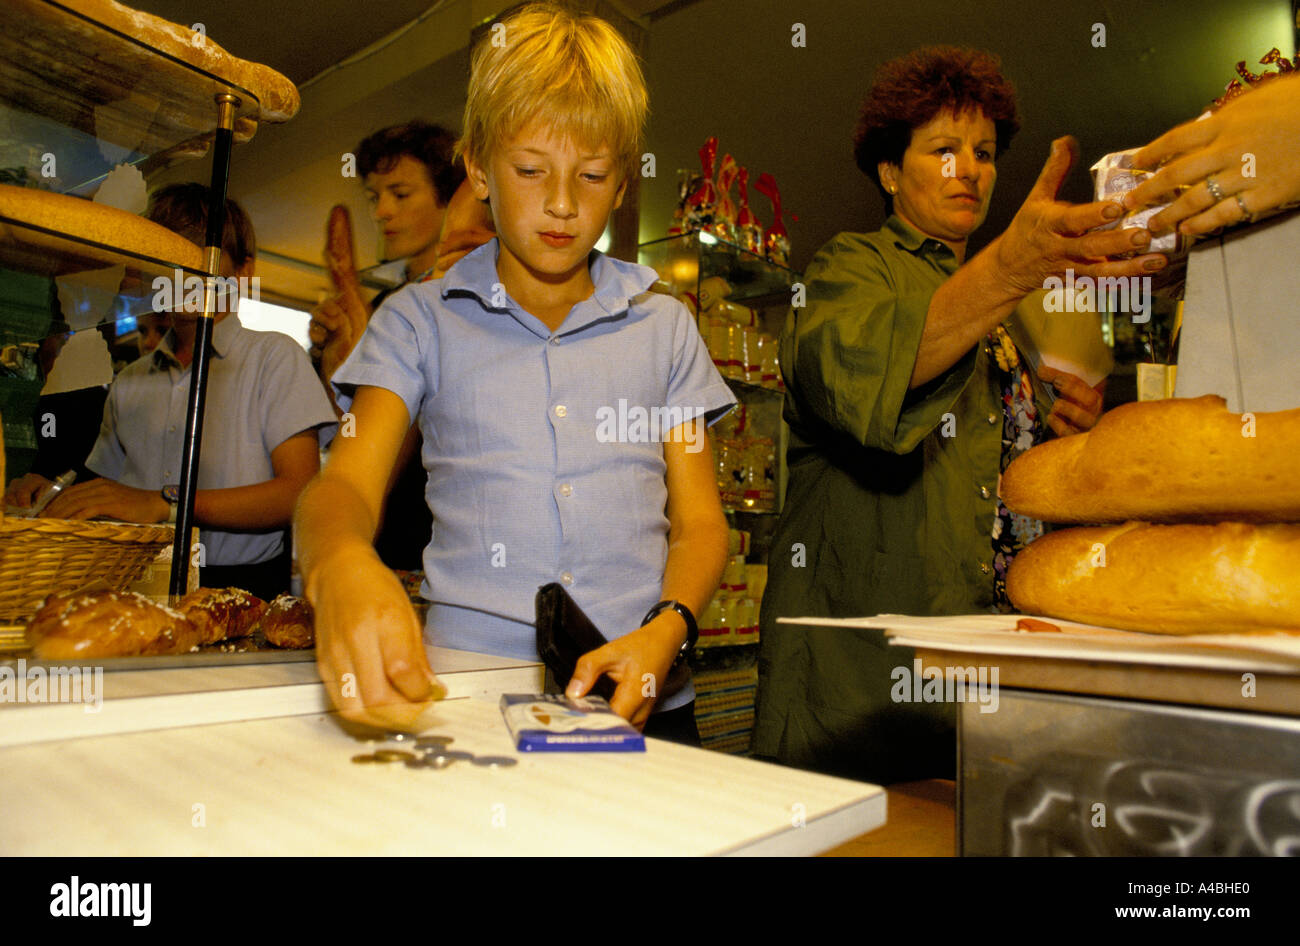 CHILDREN SHOPPING FOR BREAD. The school has an annex at Saveterre Chateau near Toulouse, France - Stock Image